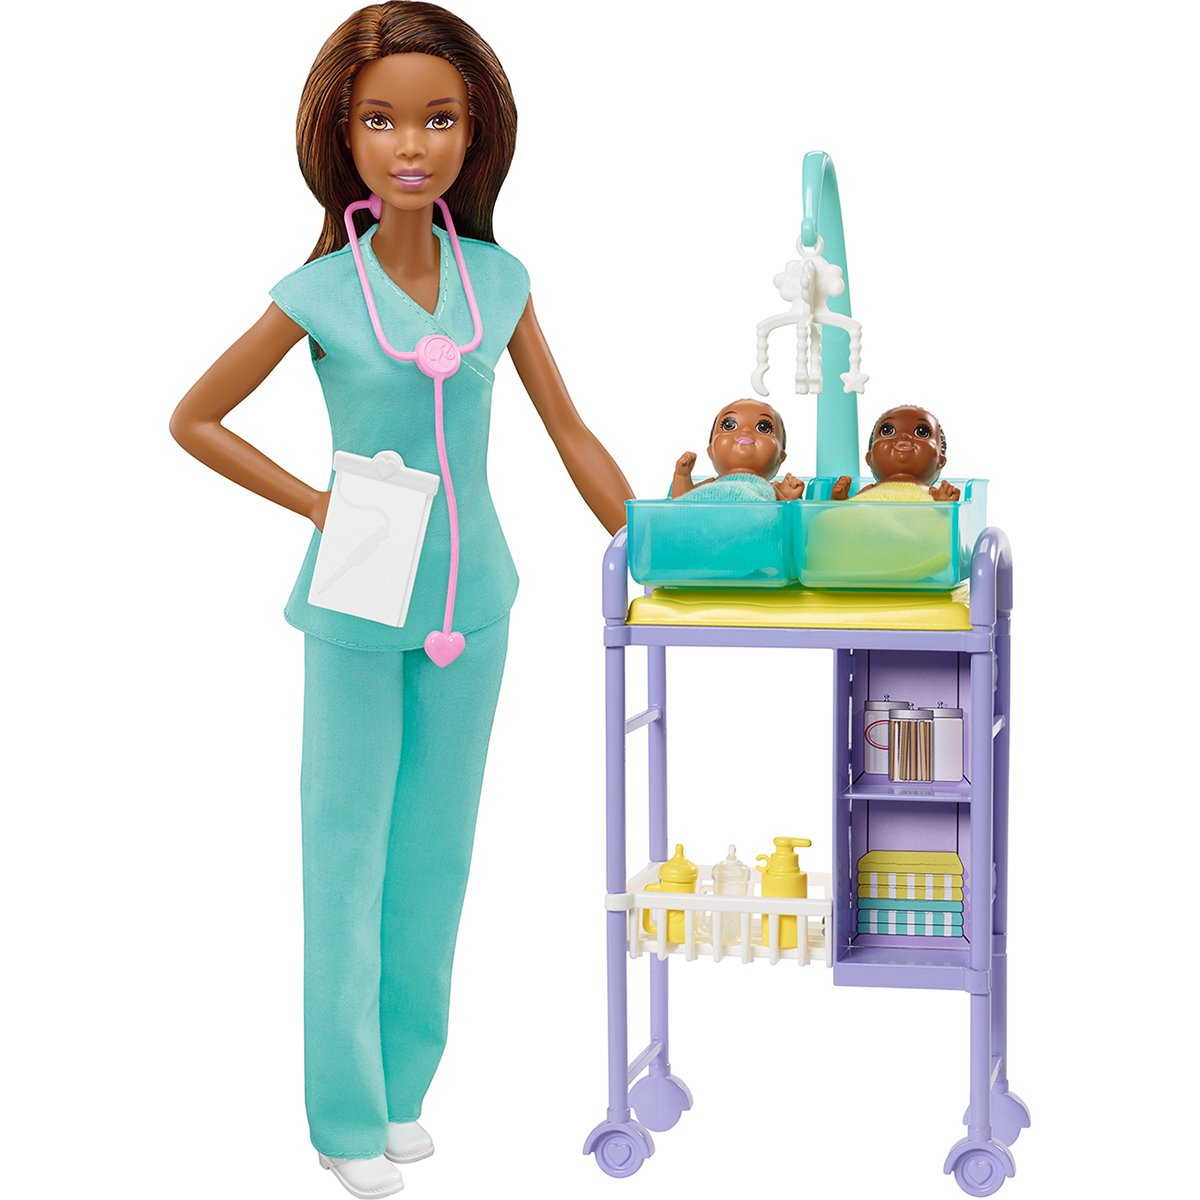 Set de joaca Barbie, Doctor pediatru, GKH24